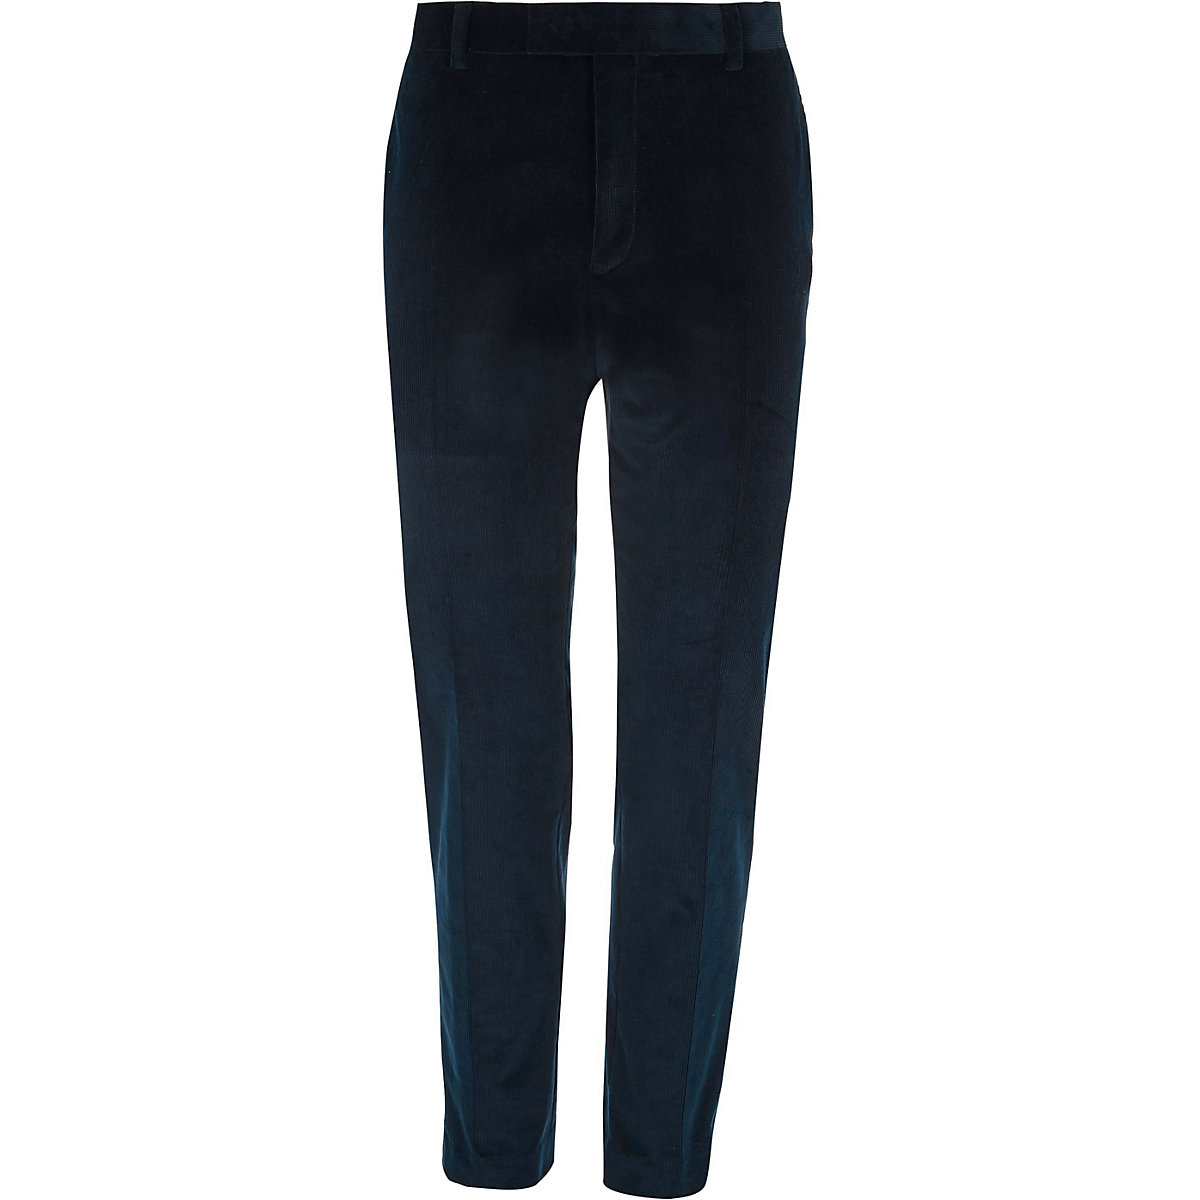 Teal blue corduroy skinny fit suit trousers